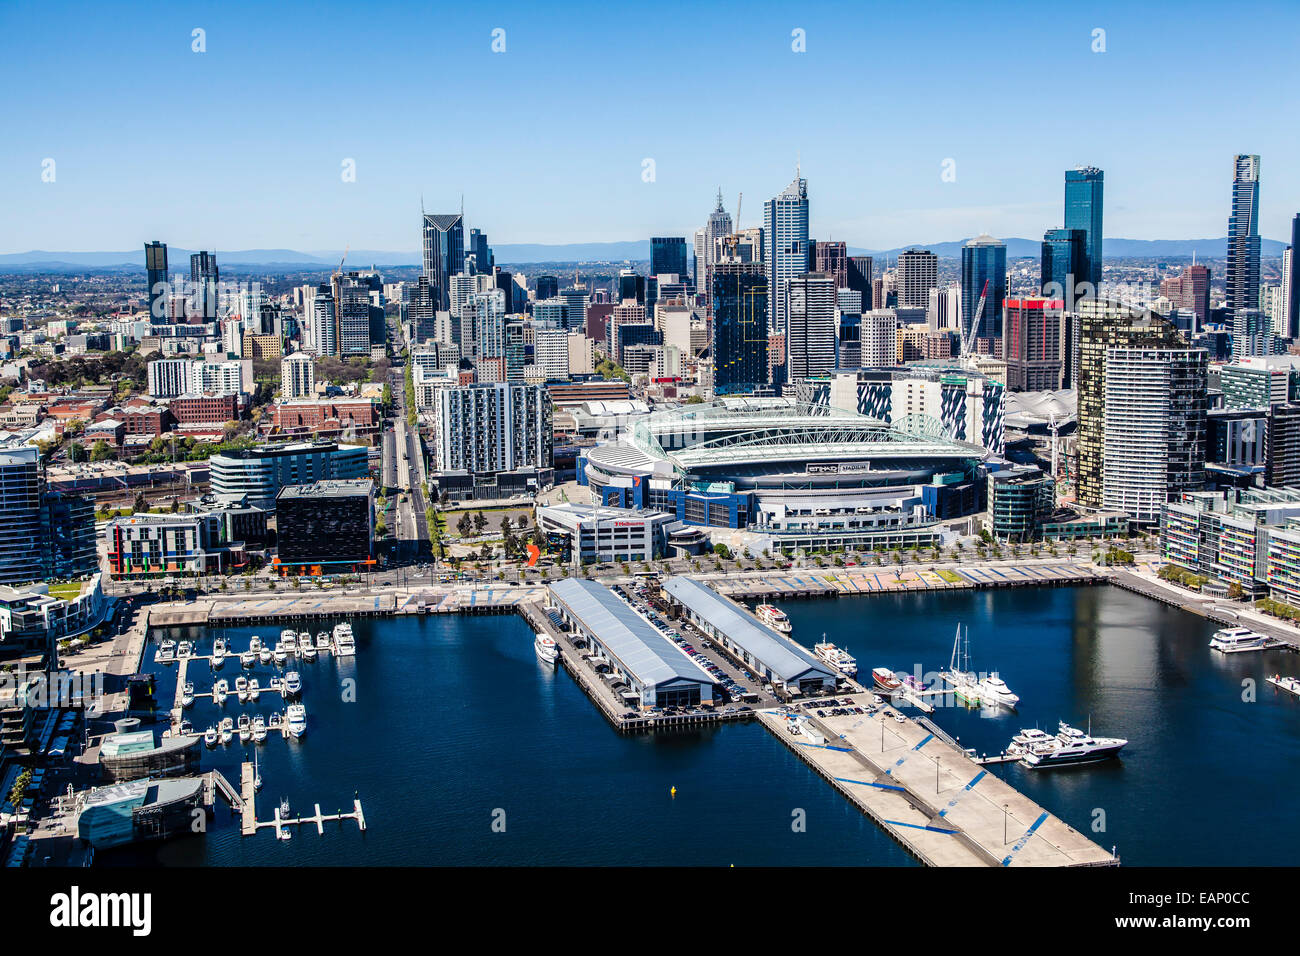 Aerial view of the Docklands in Melbourne including the CBD, Etihad Stadium and La Trobe Street - Stock Image